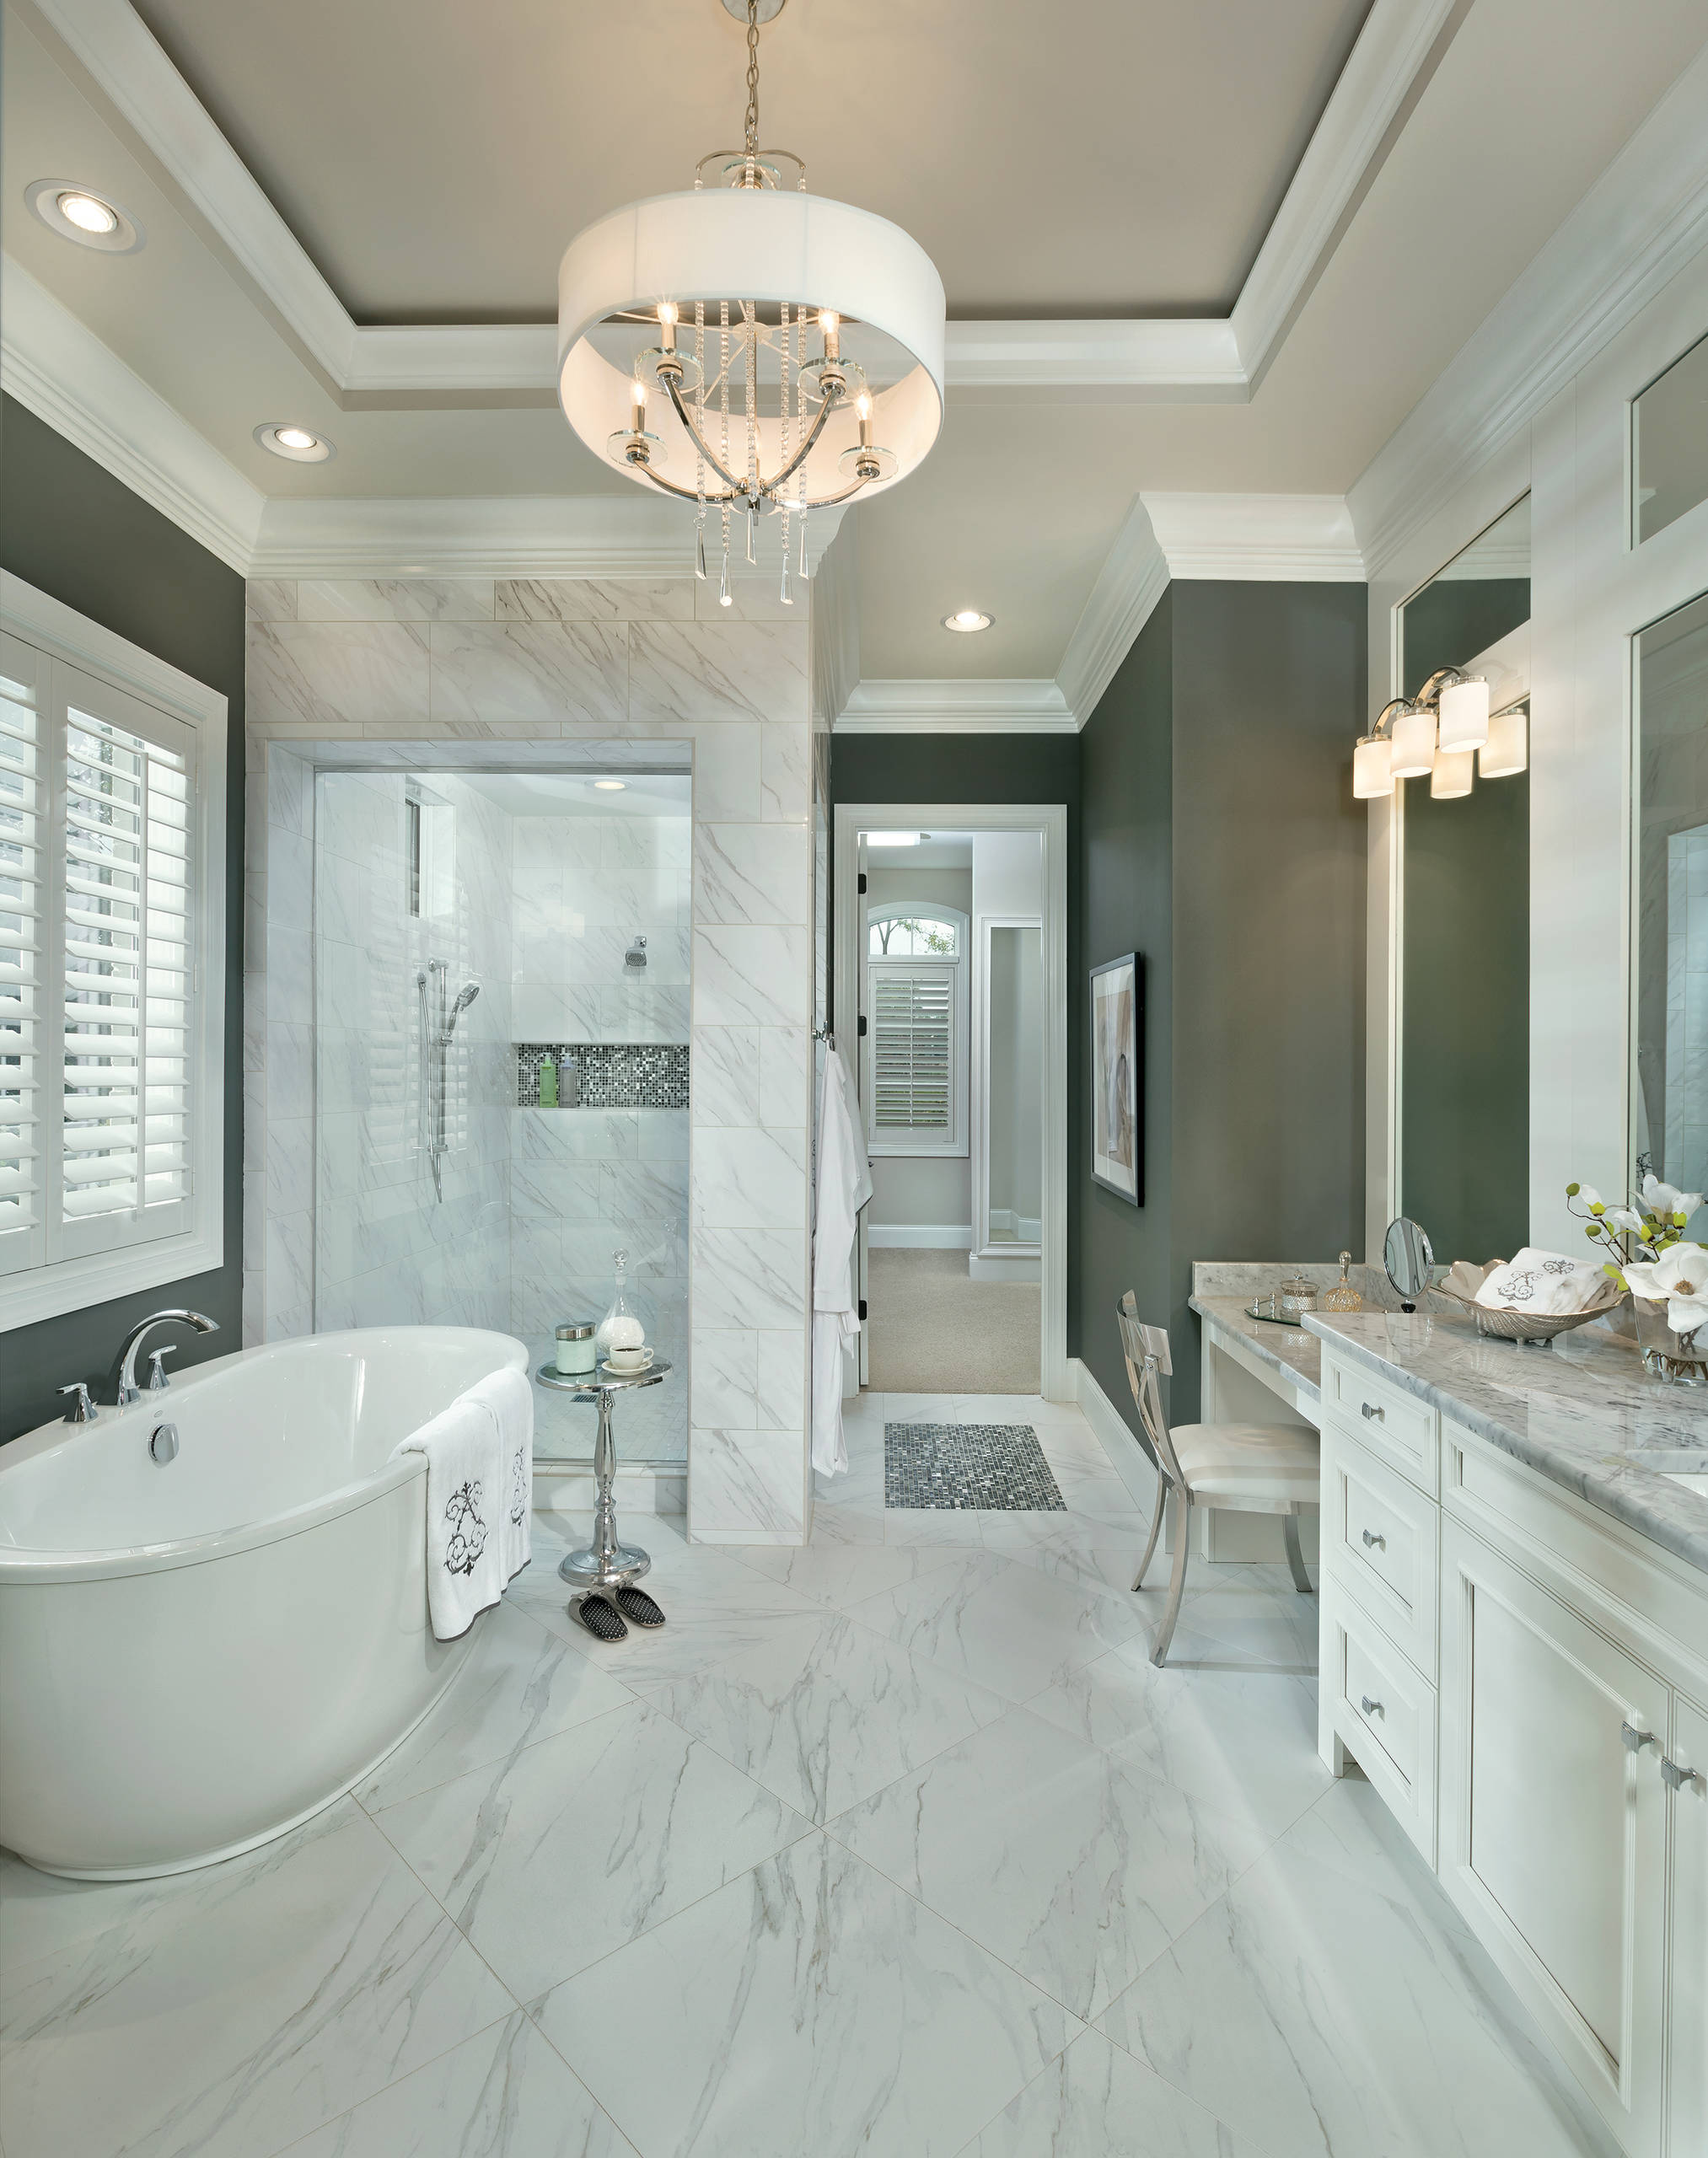 10 Beautiful Porcelain Tile Bathroom Pictures & Ideas - January